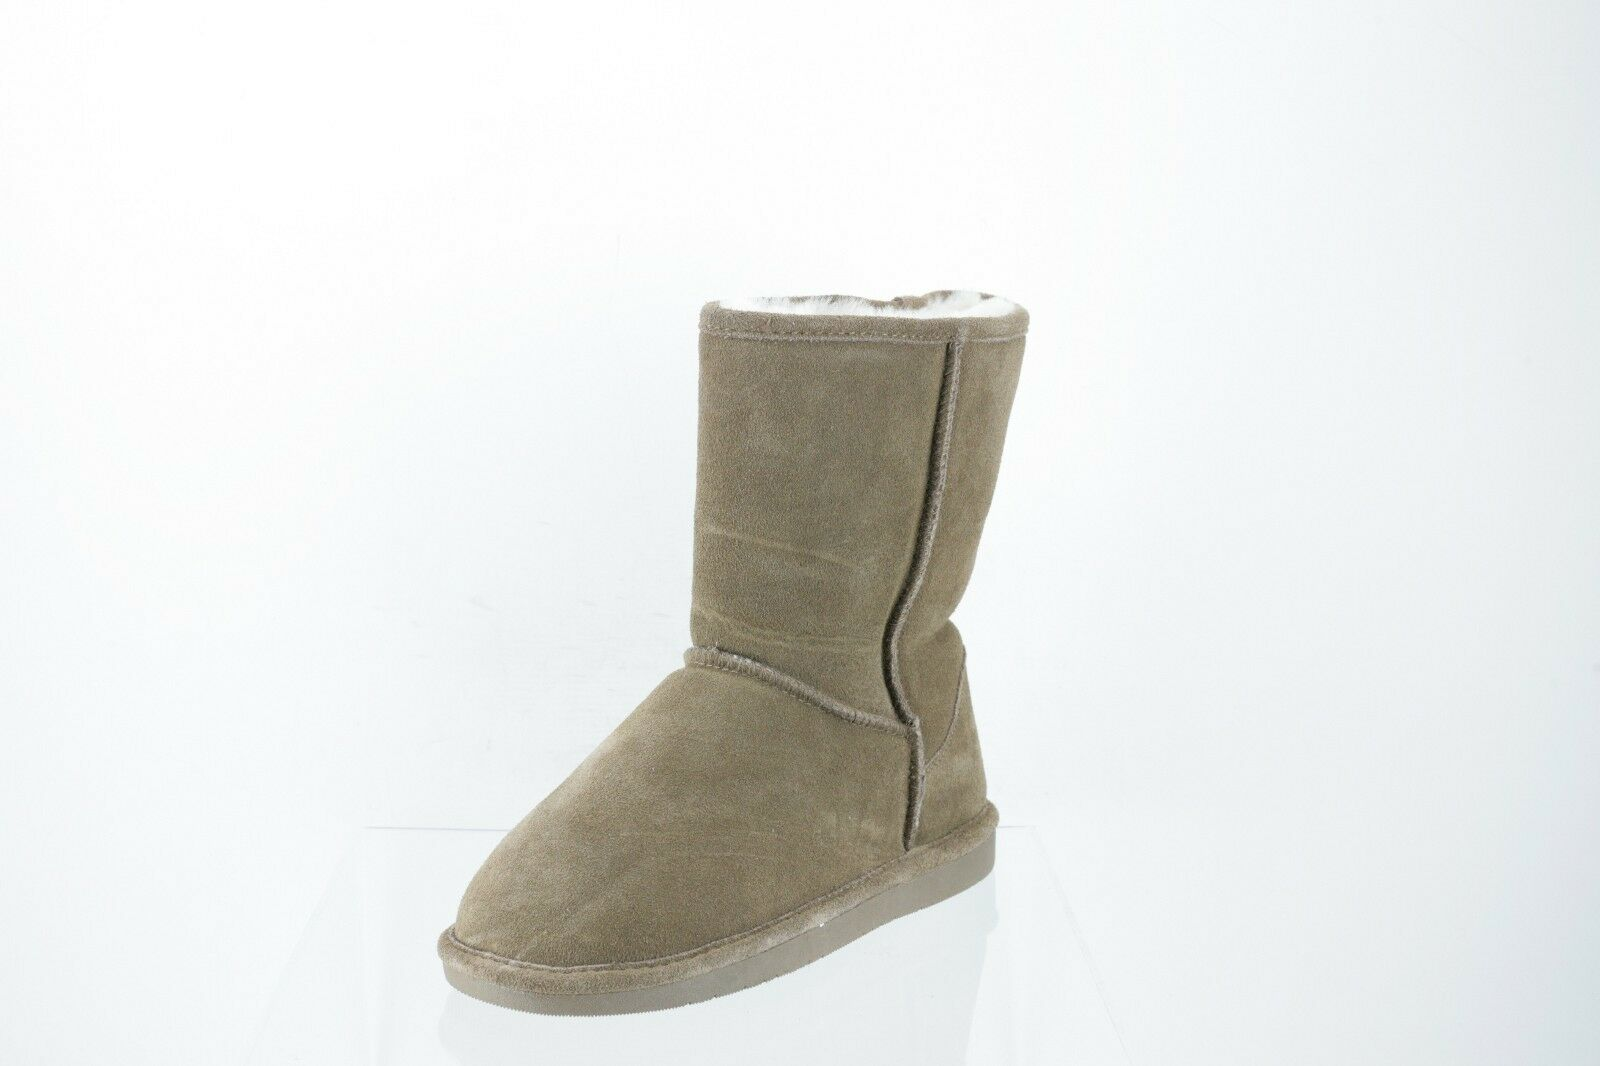 Abound Sasha Brown Suede Faux Fur Short Boots Women's Shoes Size 8 M NEW